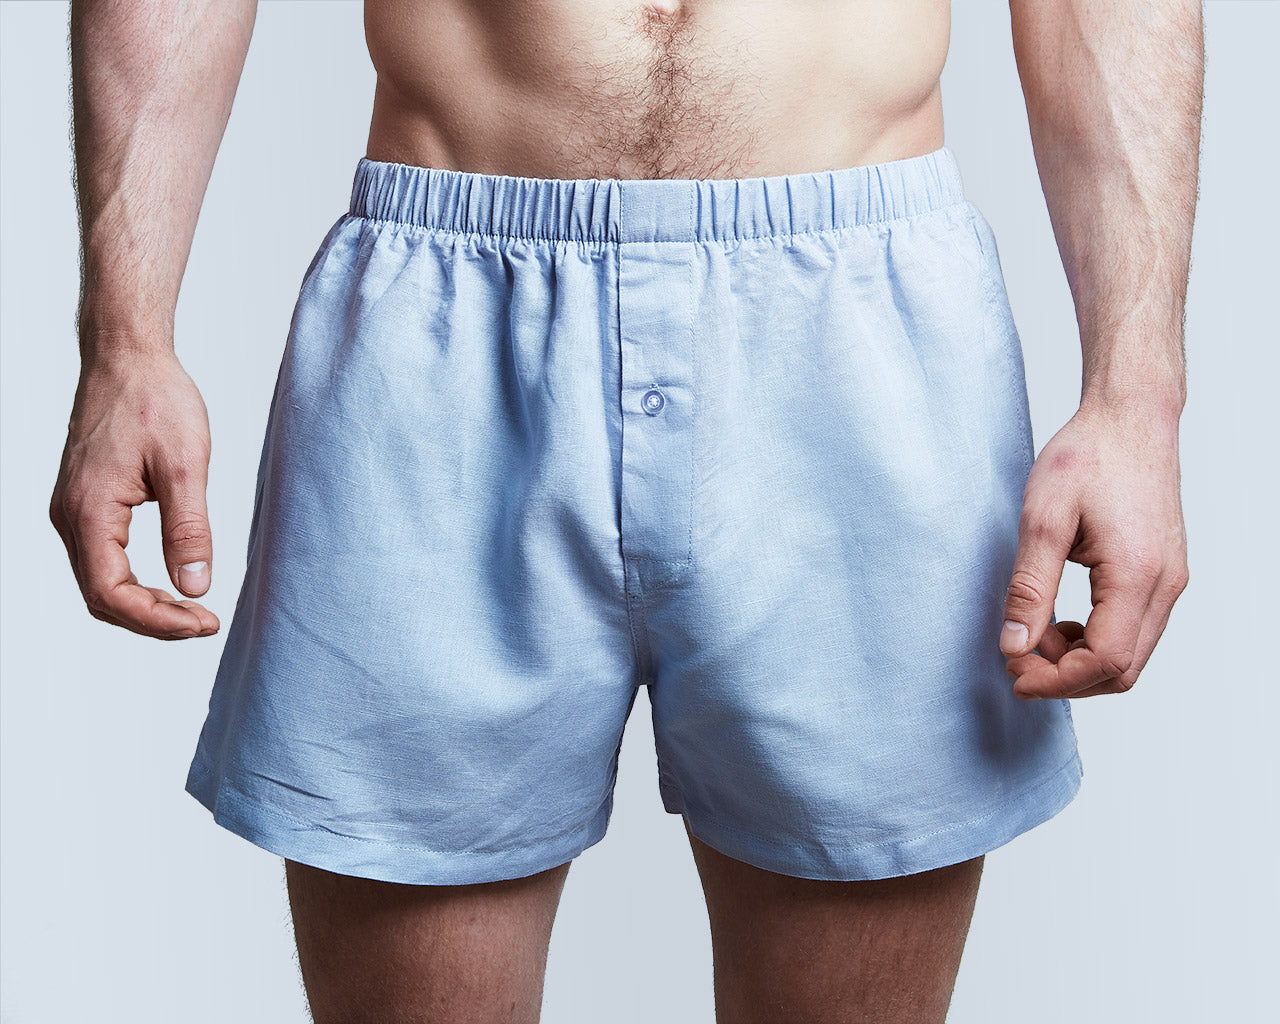 3x Boxer Shorts, One of Each Style